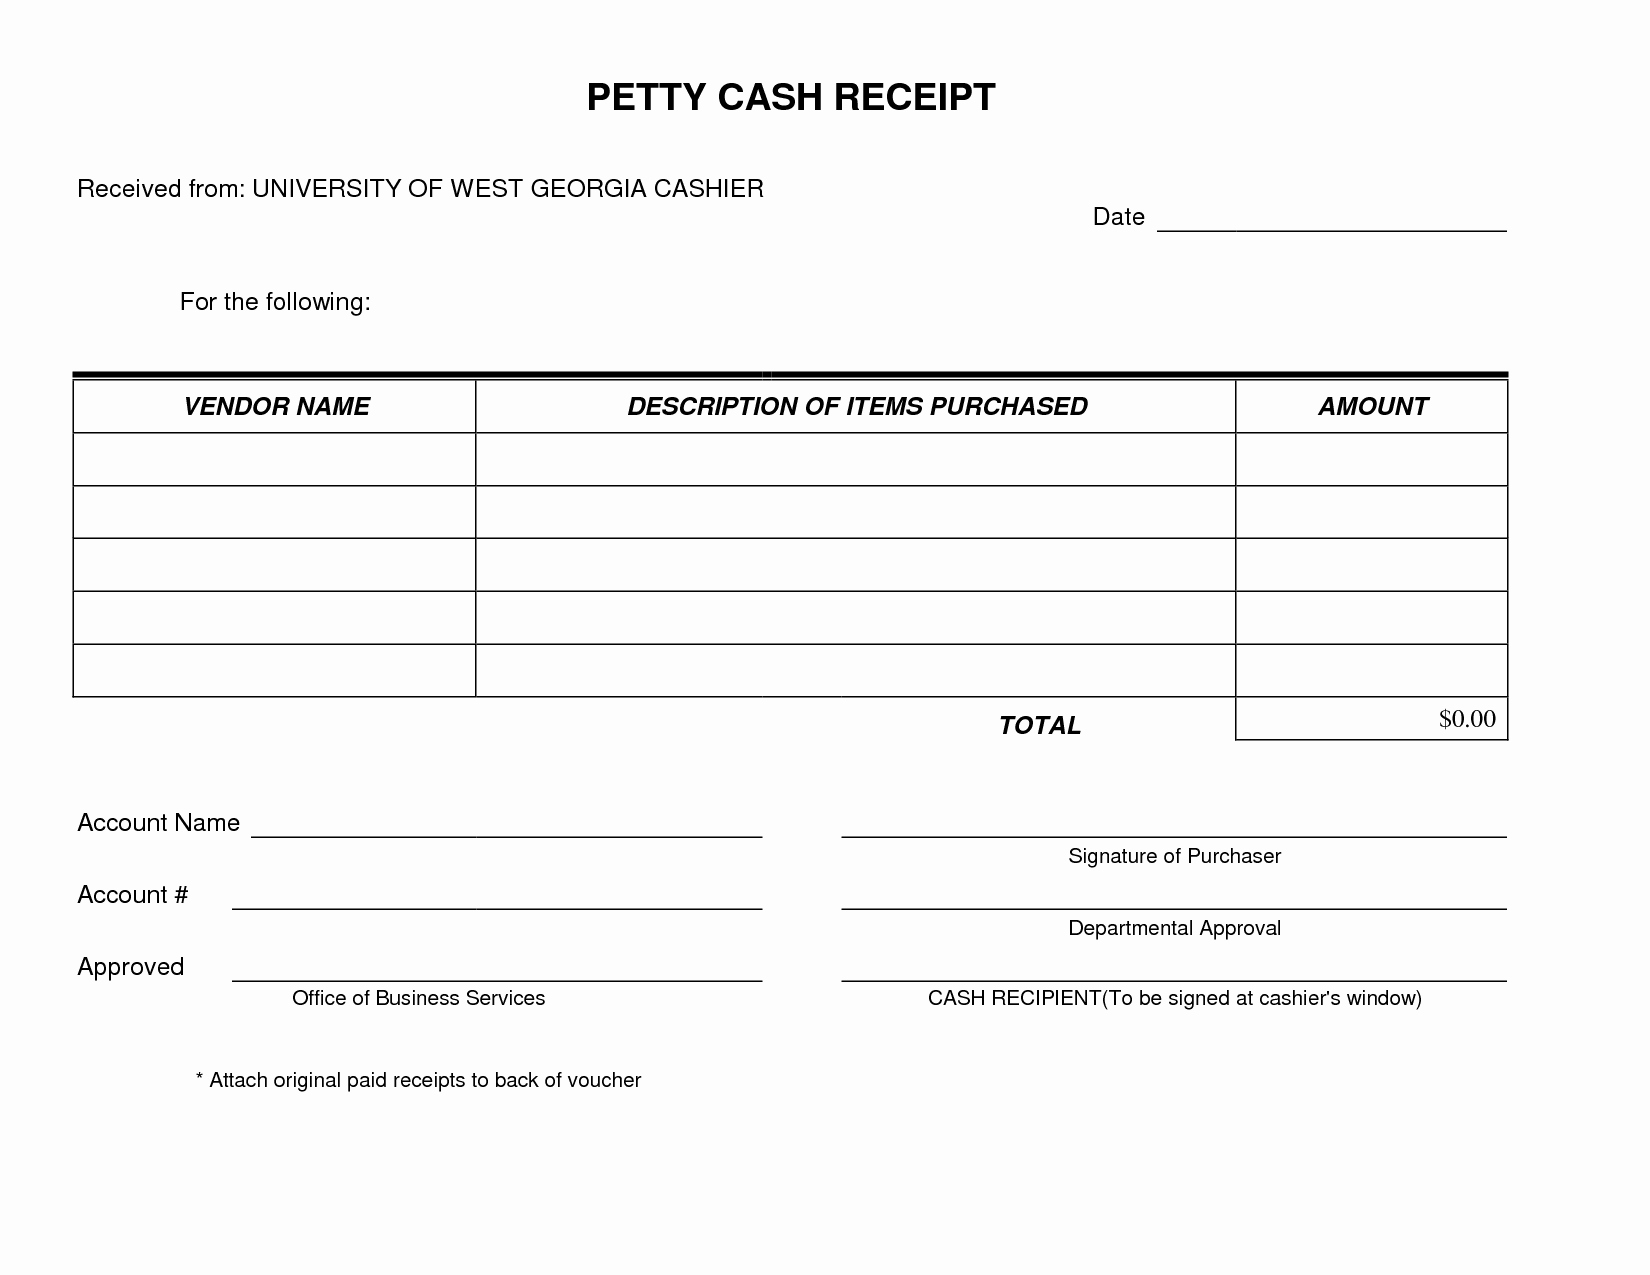 Use Of Funds Template Unique Petty Cash Receipt form Template Very Simple and Easy to